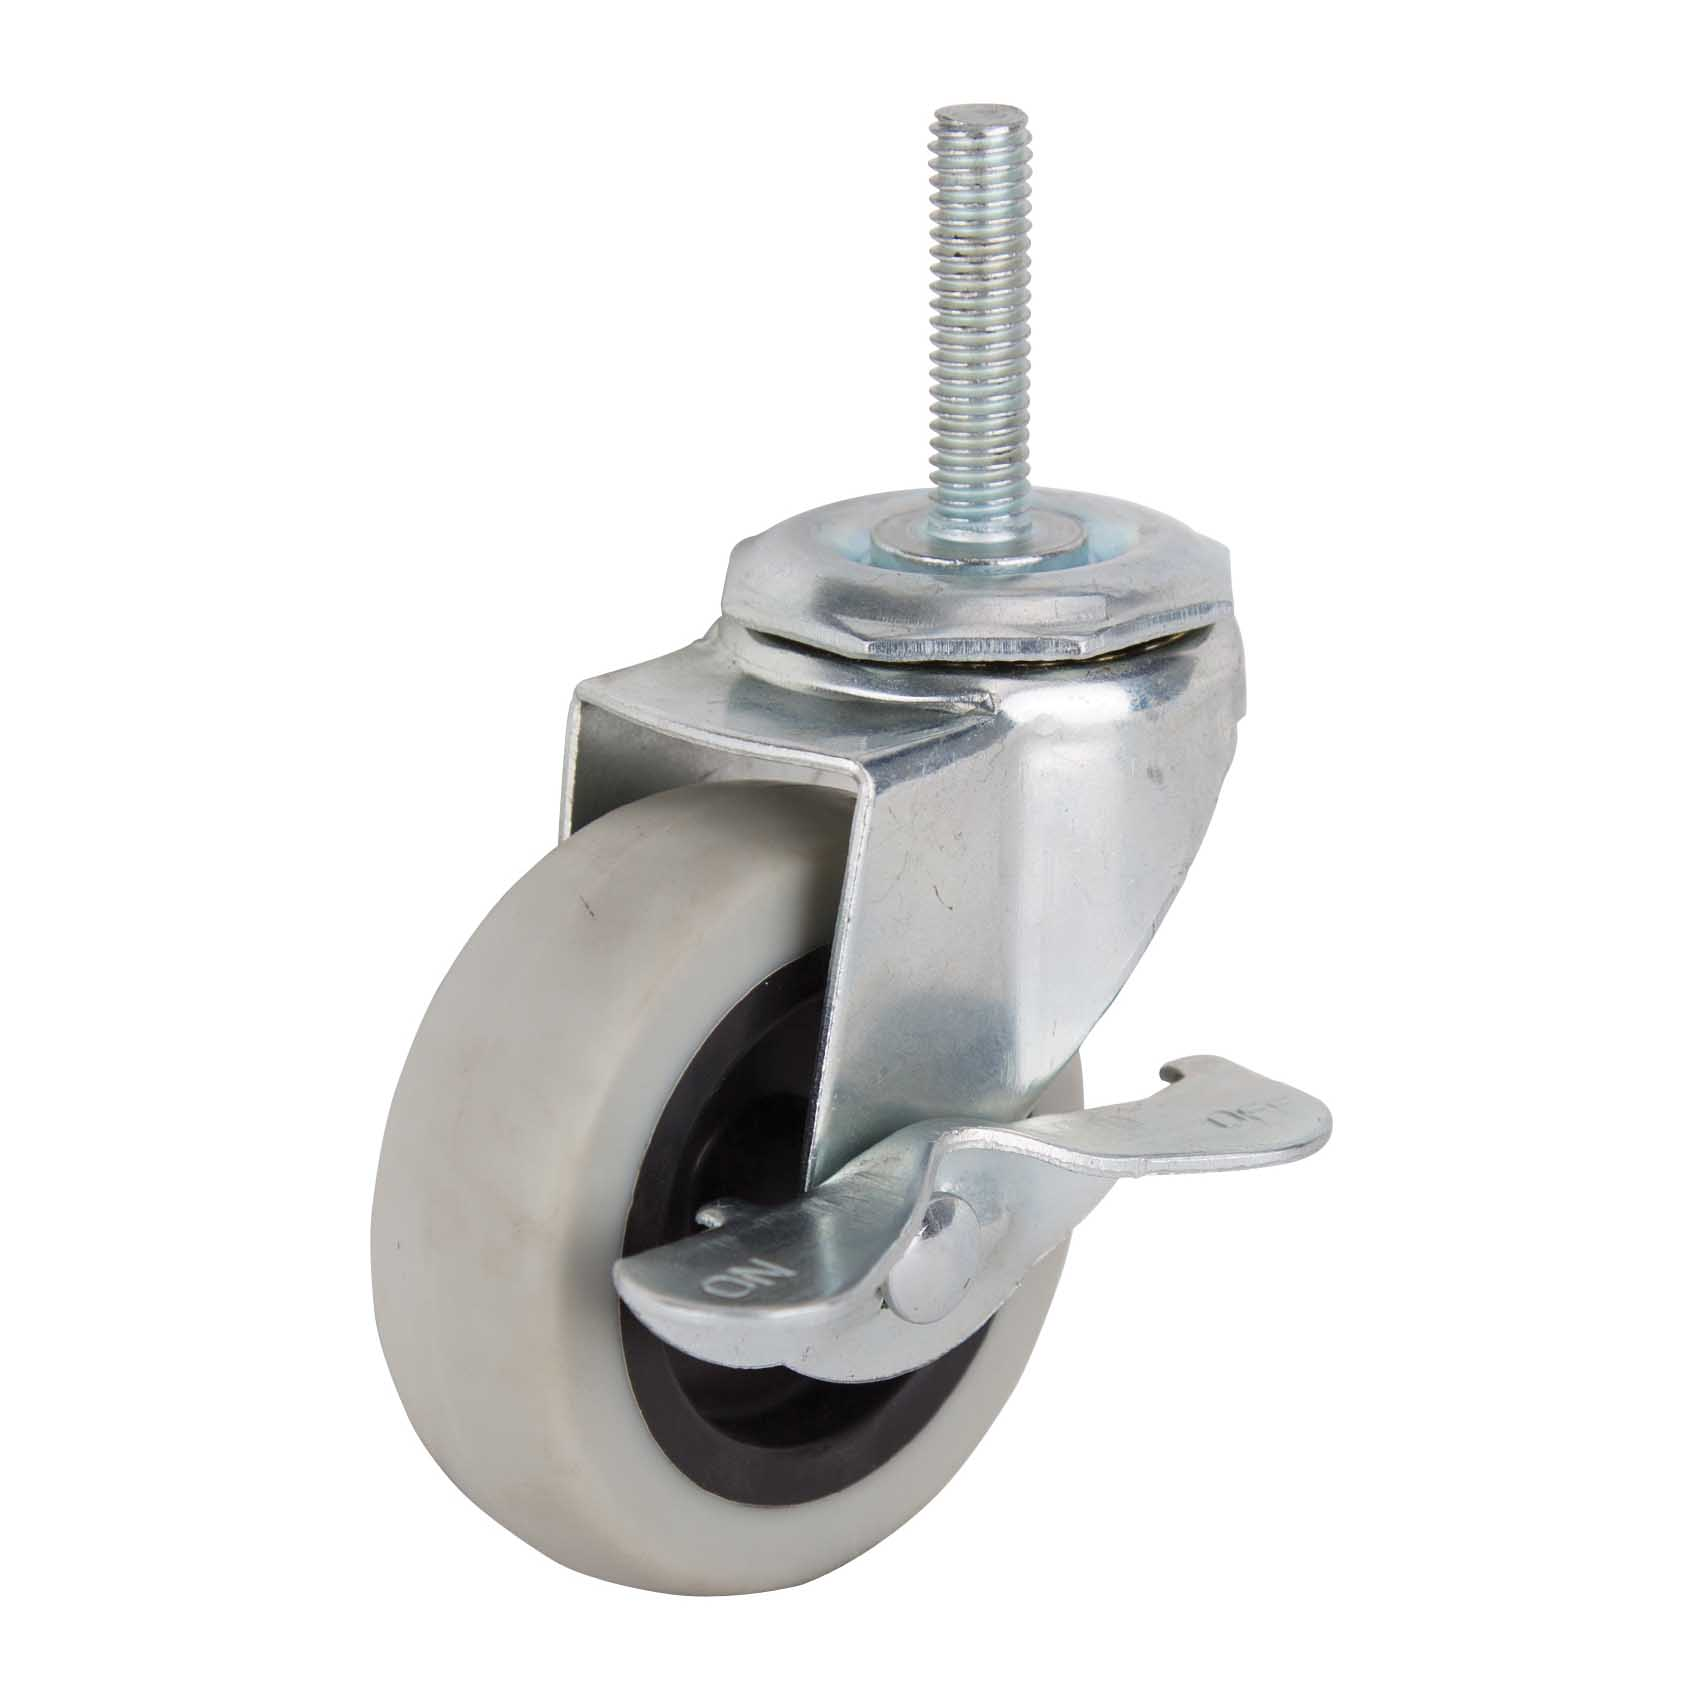 Picture of ProSource JC-N08-G Swivel Caster with Brake, 3 in Dia Wheel, Thermoplastic Rubber Wheel, Gray, 130 lb